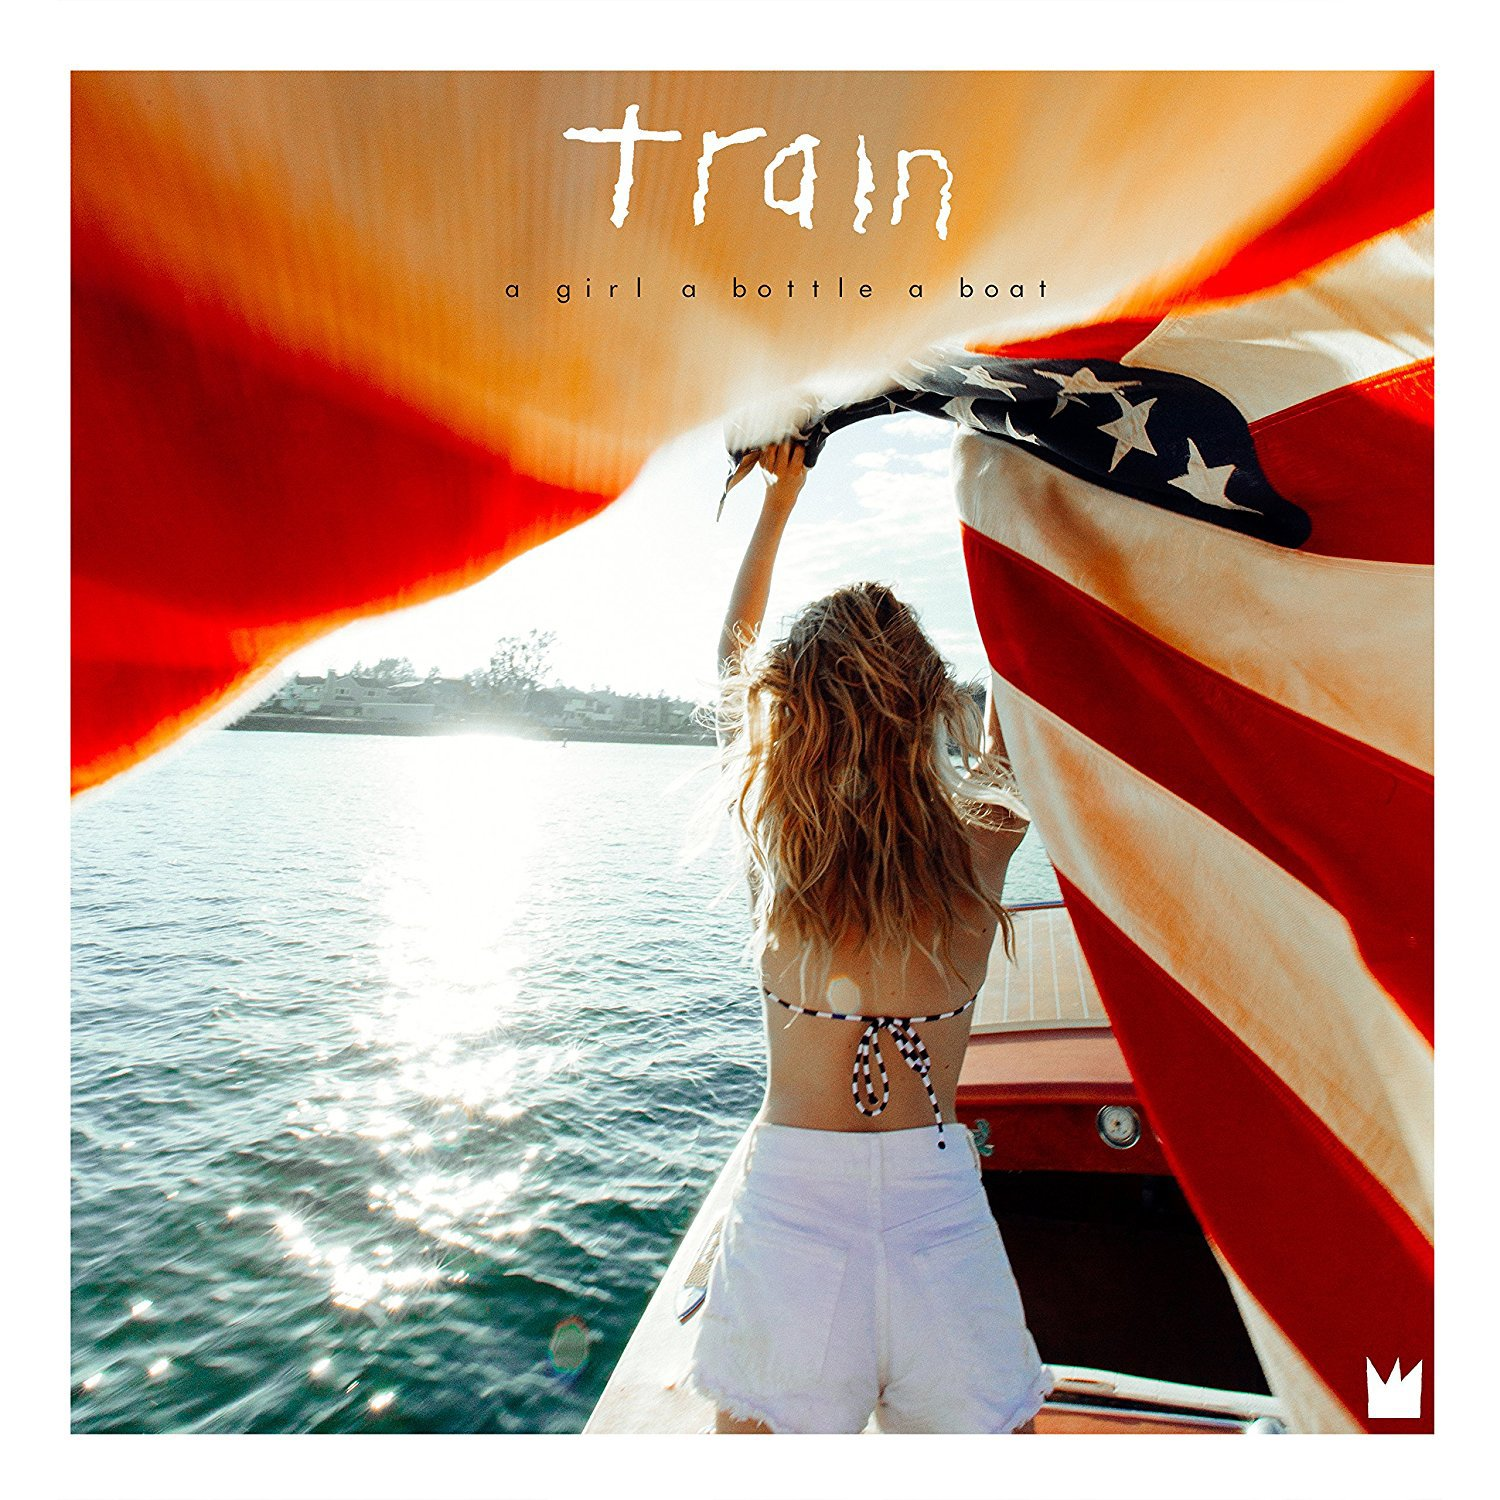 CD : Train - a girl a bottle a boat (CD)